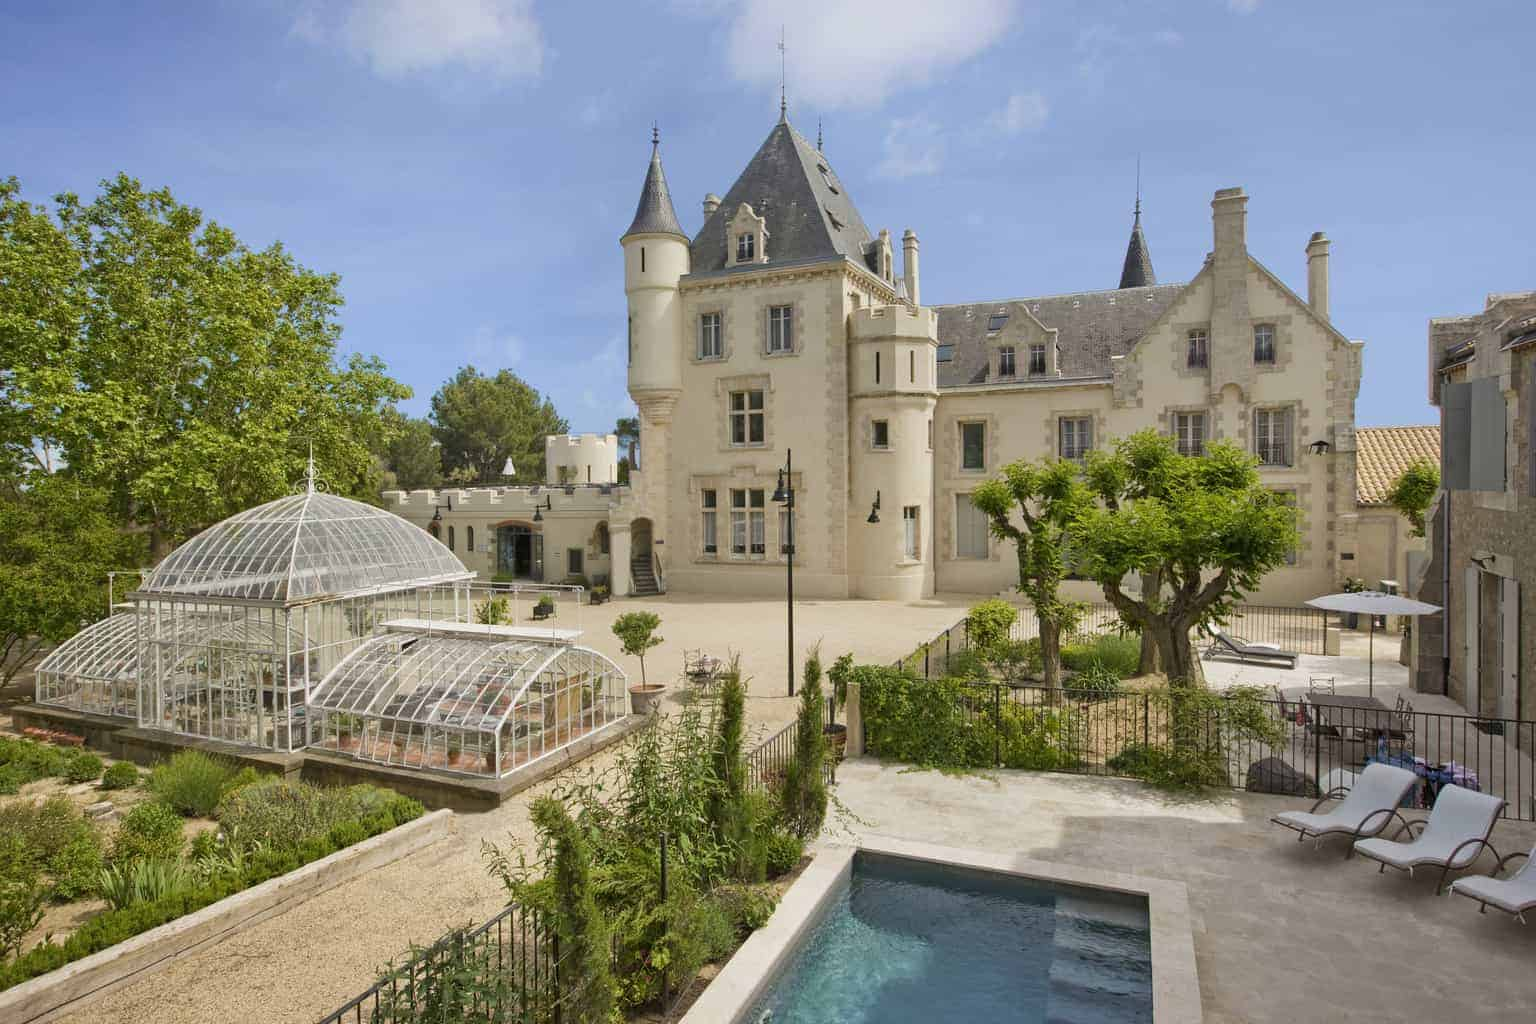 20 Dreamy Château Hotels in France Where You Can Sleep in Style